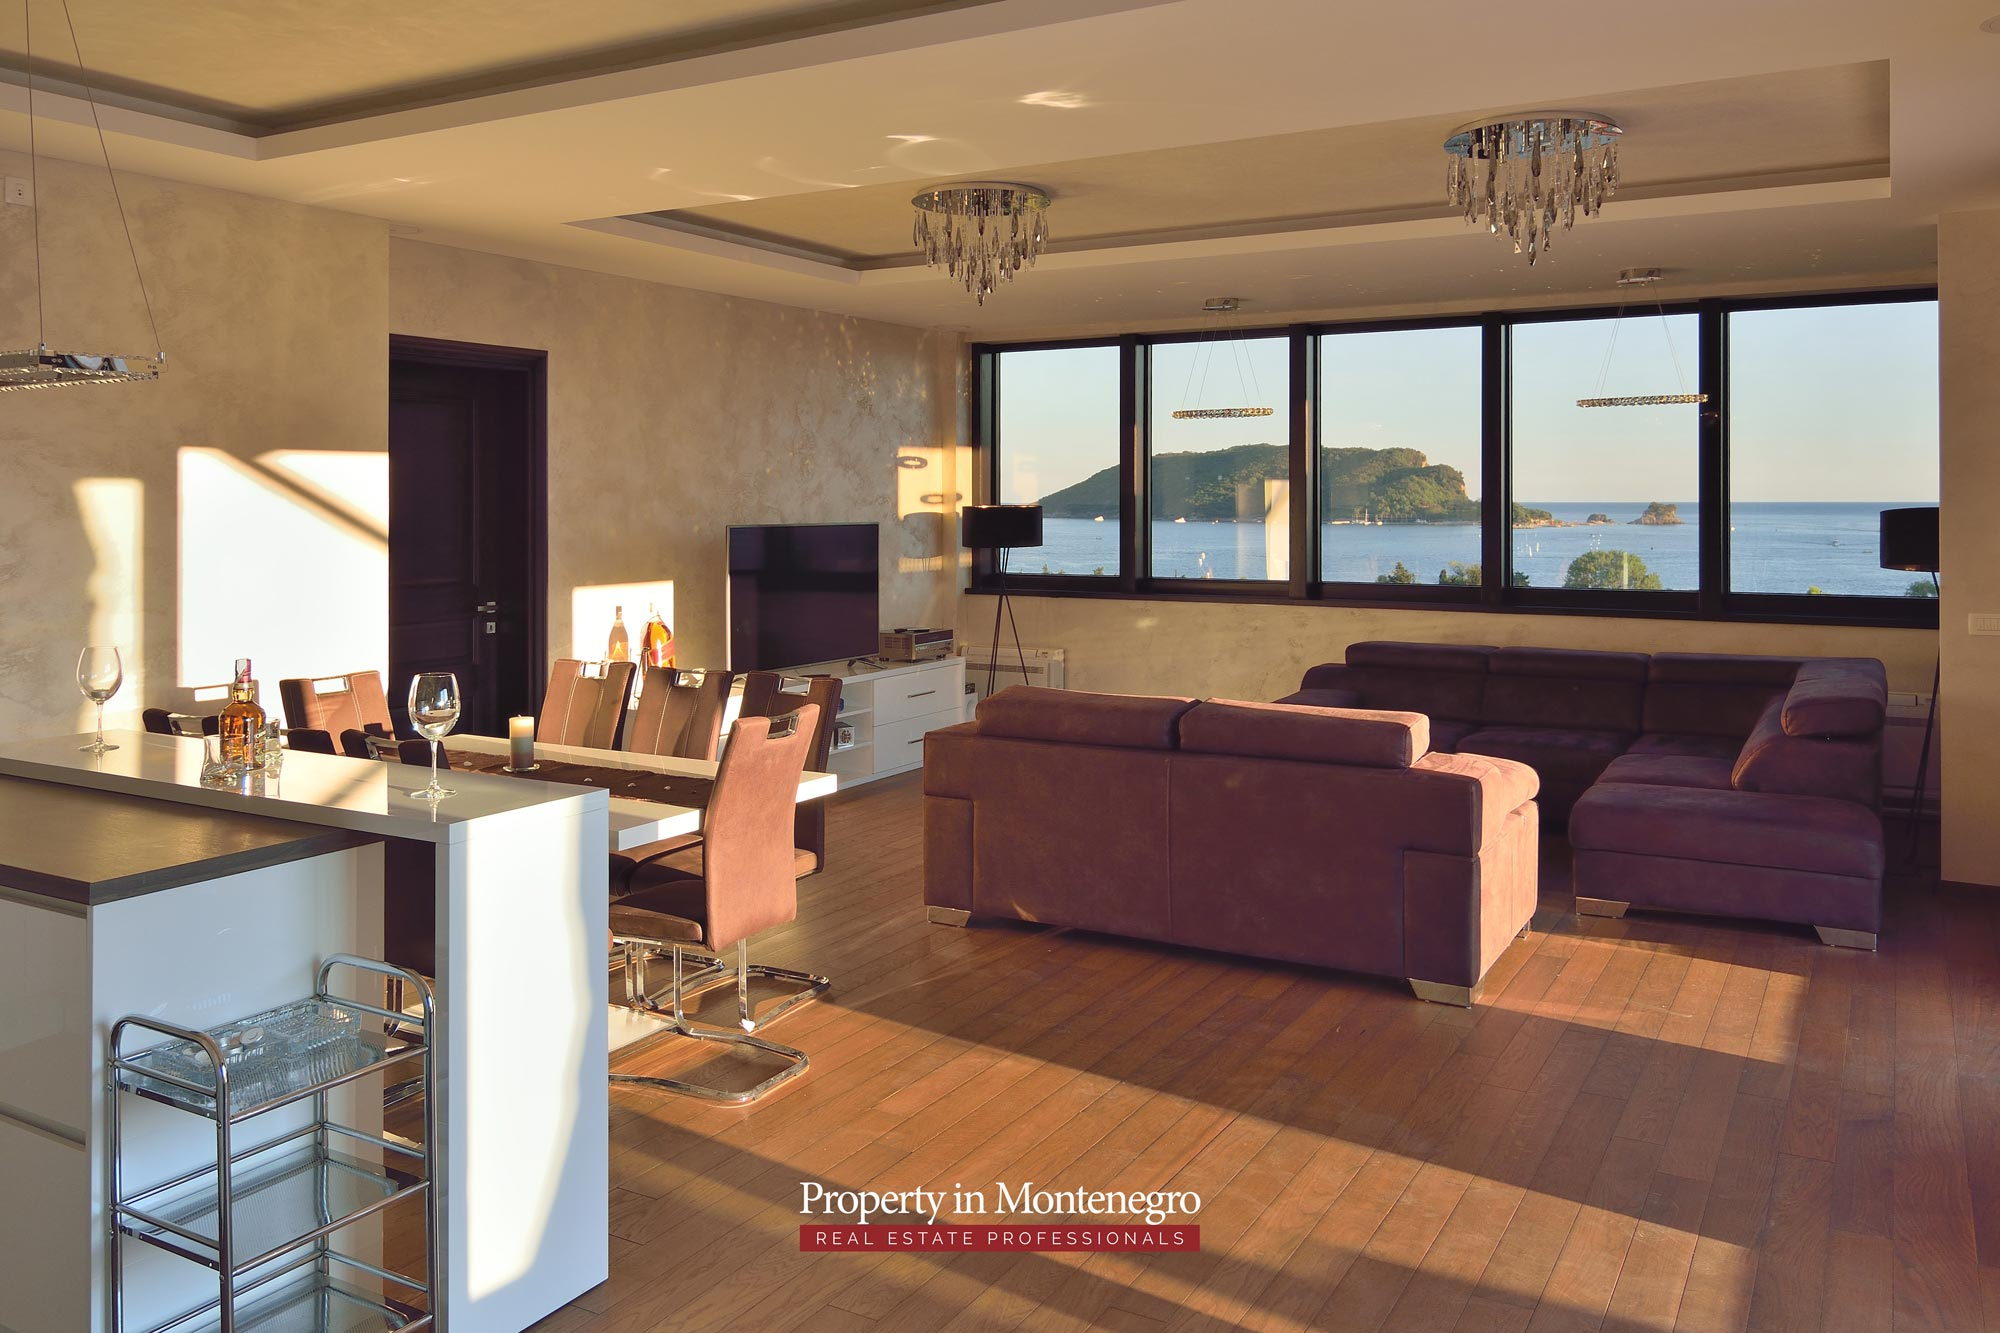 luxury-penthouse-with-panoramic-view-and-swimming-pool-for-sale-in-Budva-Montenegro (47).jpg